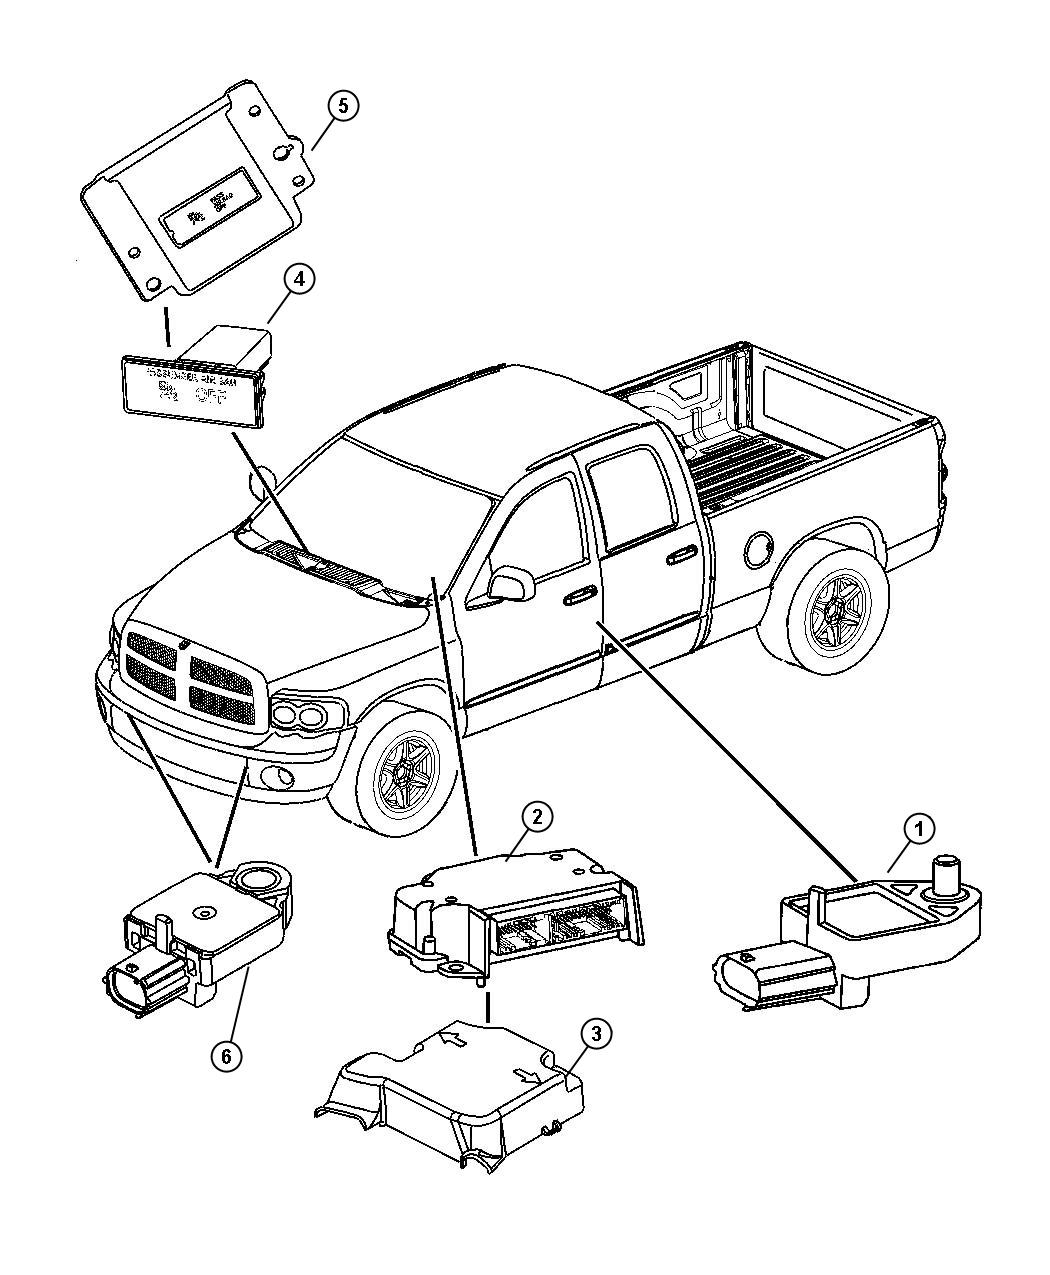 Removing and installing the side airbag crash sensor furthermore Airbag Module Sensor Location as well Chevy Silverado Sd Sensor Location likewise Srs Module Location also P 0996b43f8036fcd9. on silverado air bag sensor location